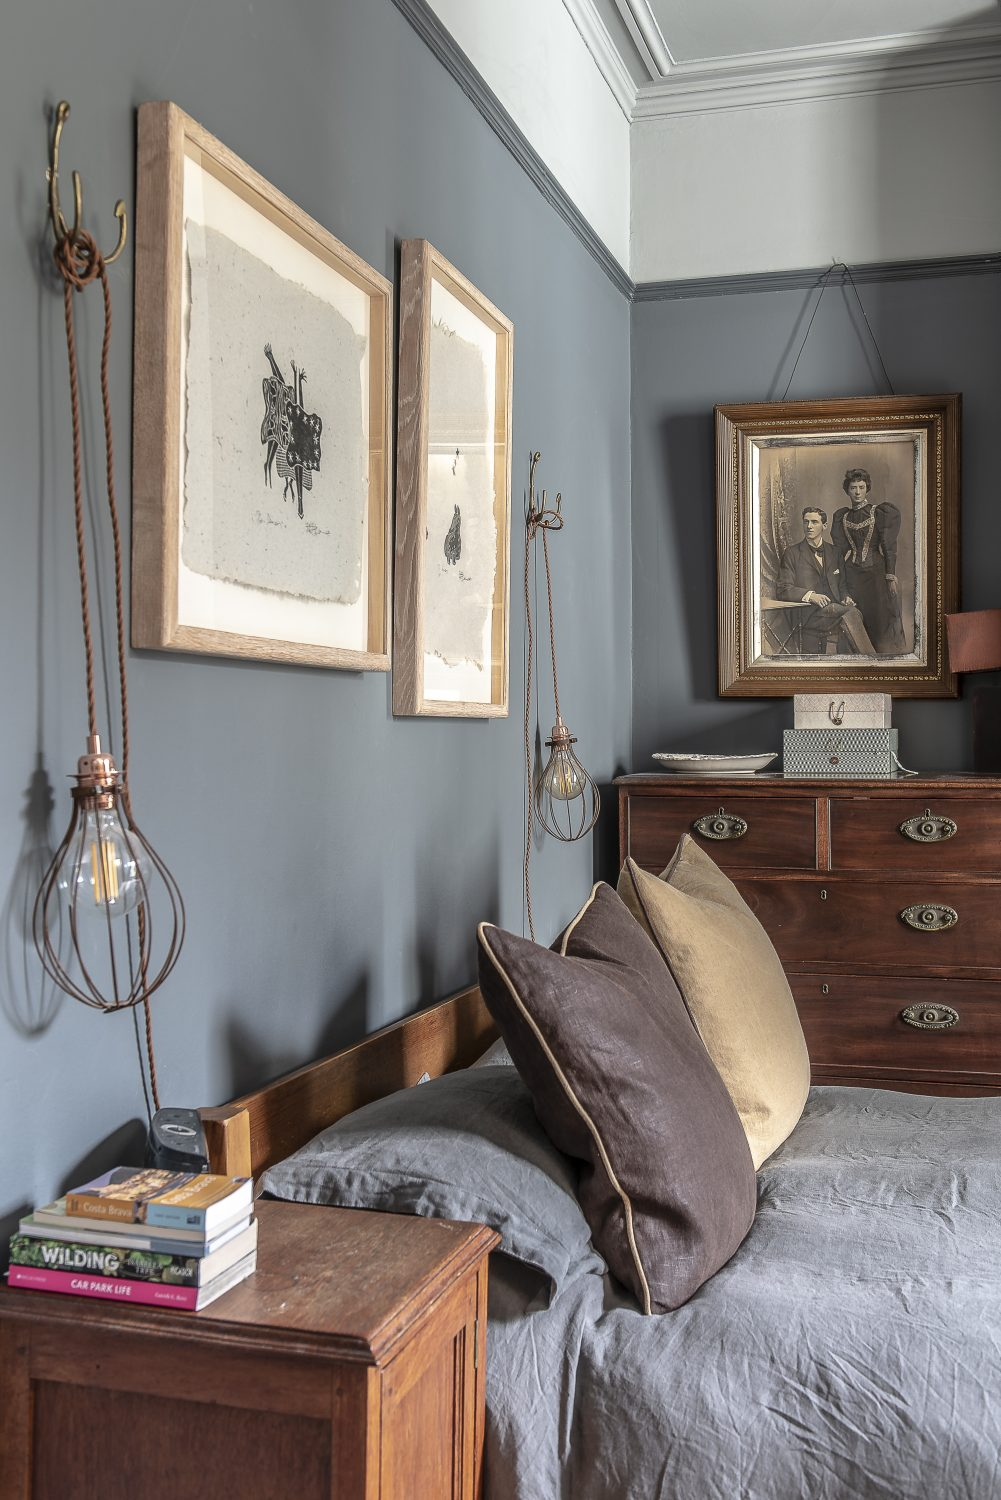 Sadie's own bedroom is decorated in a palette of dark and light greys, golds and leather